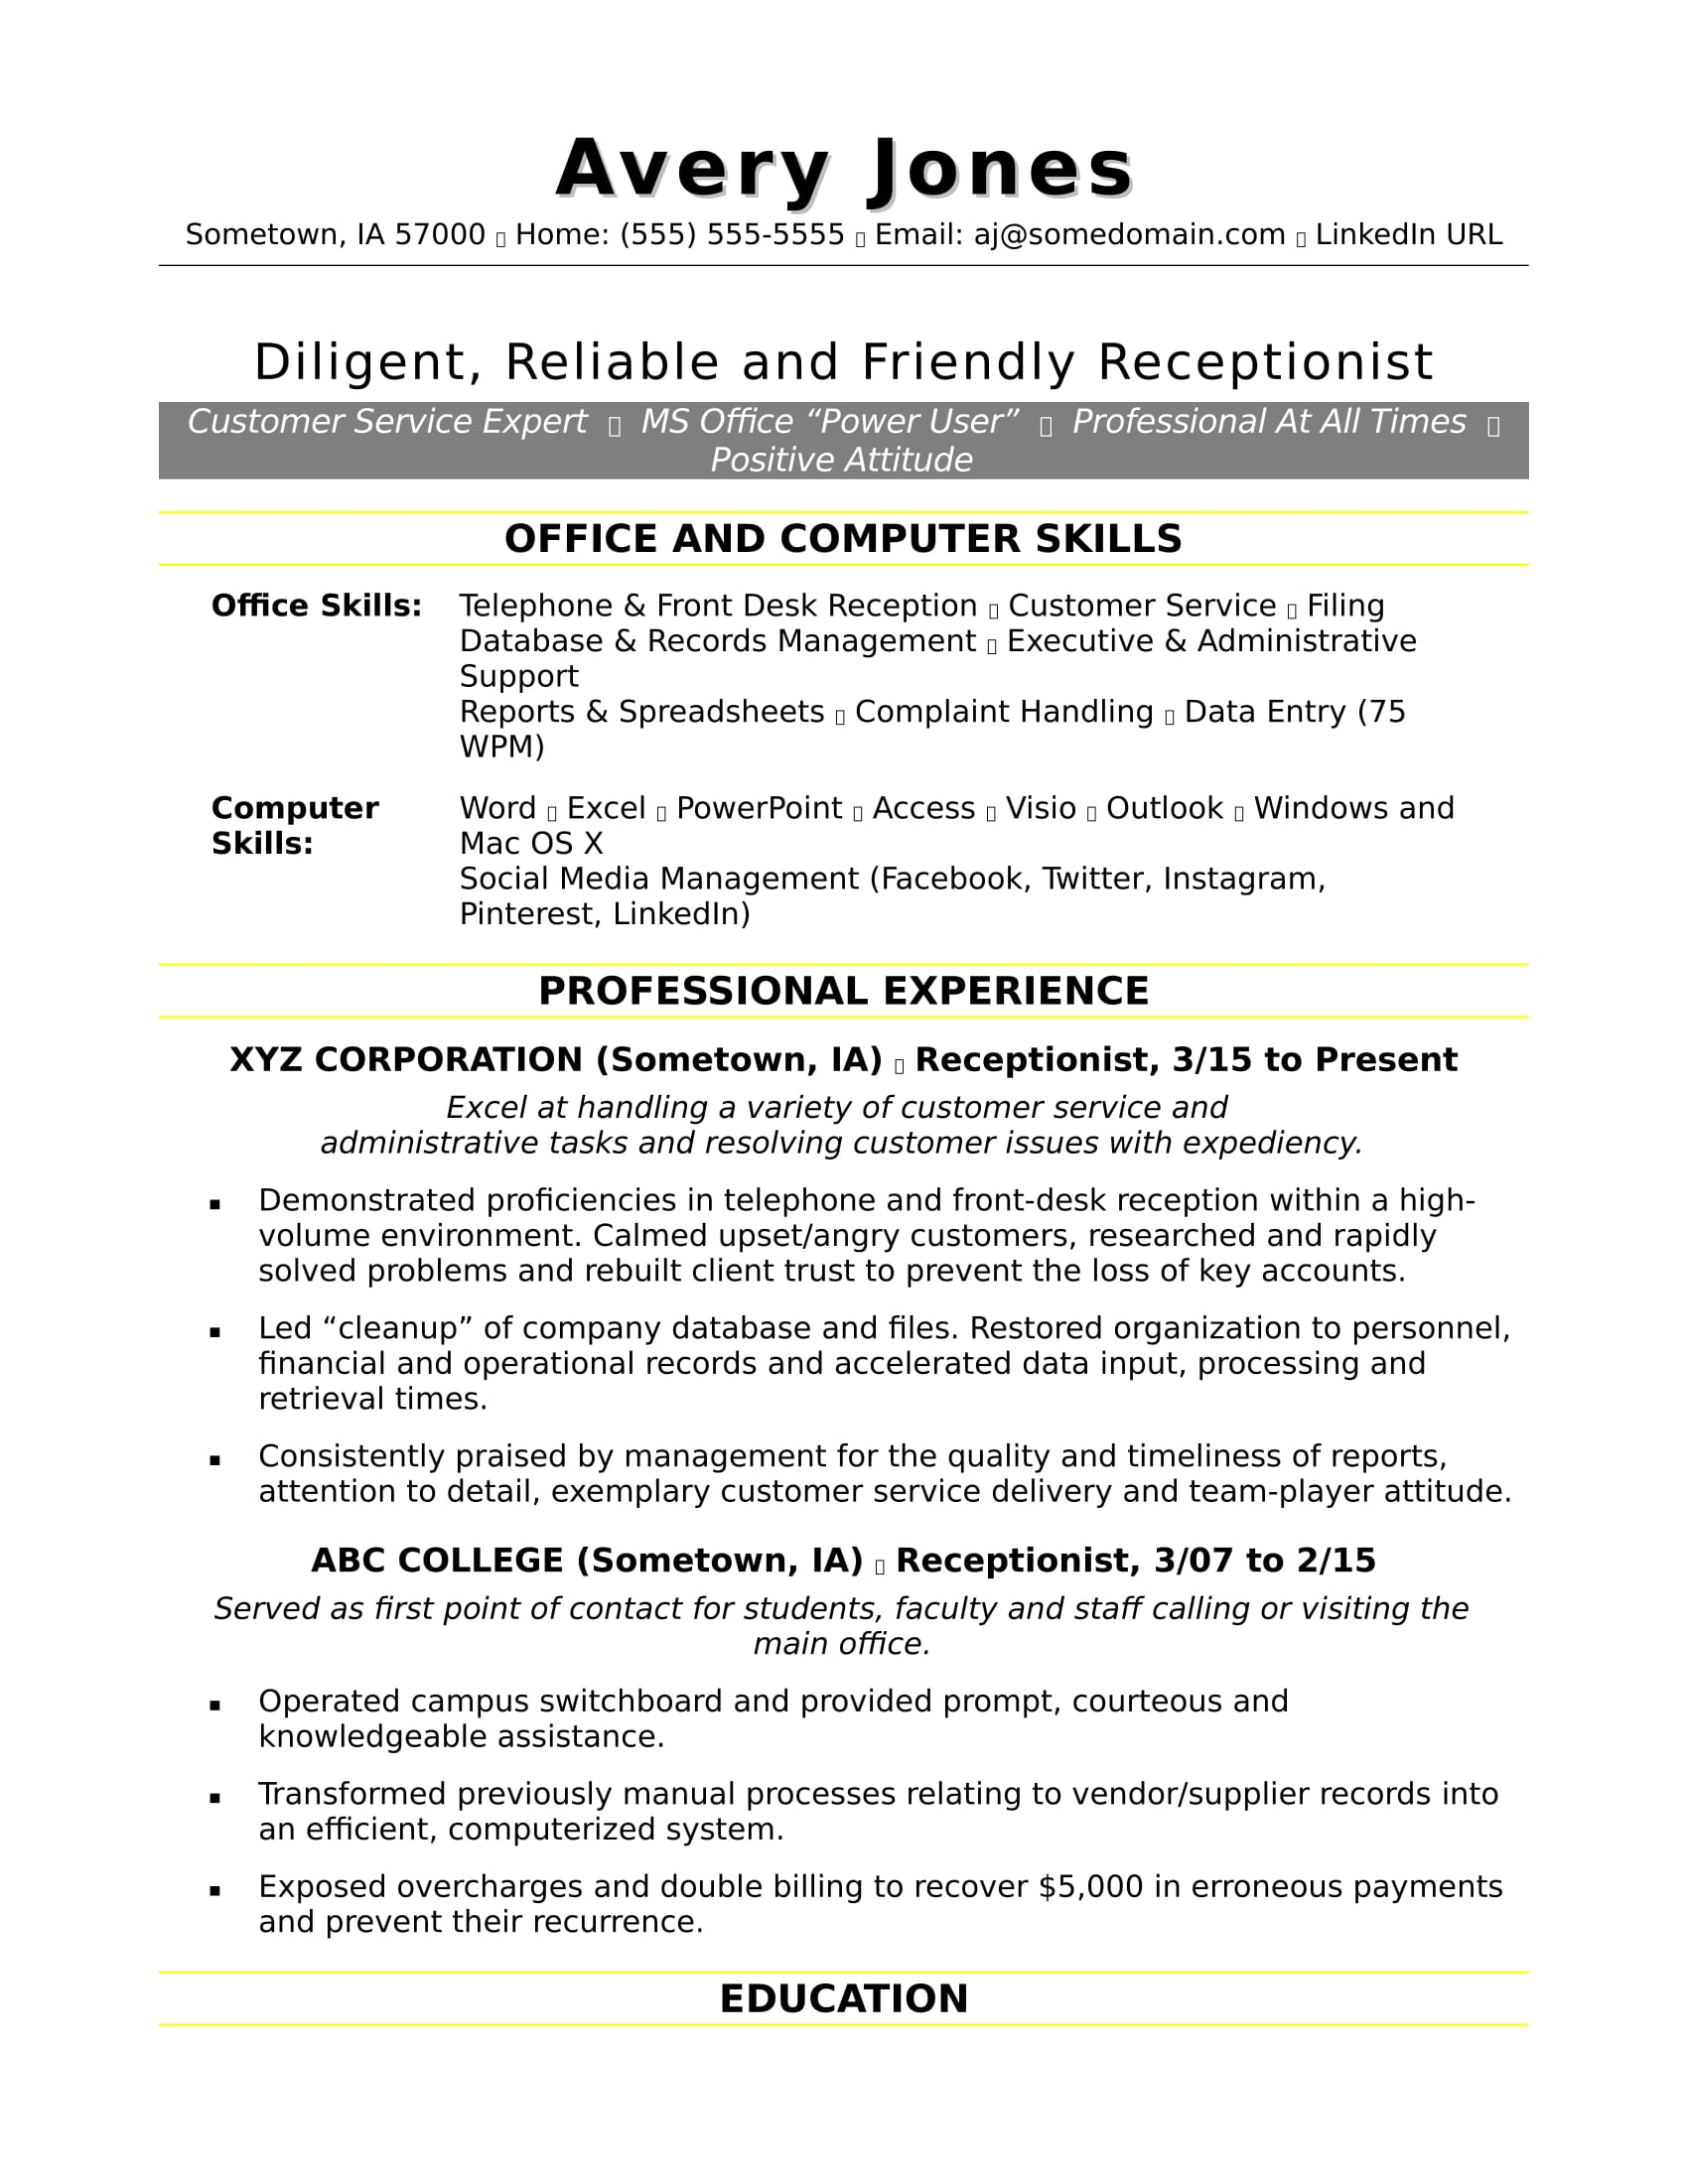 receptionist resume sample monster best skills to put on experienced attorney samples Resume Best Skills To Put On A Resume